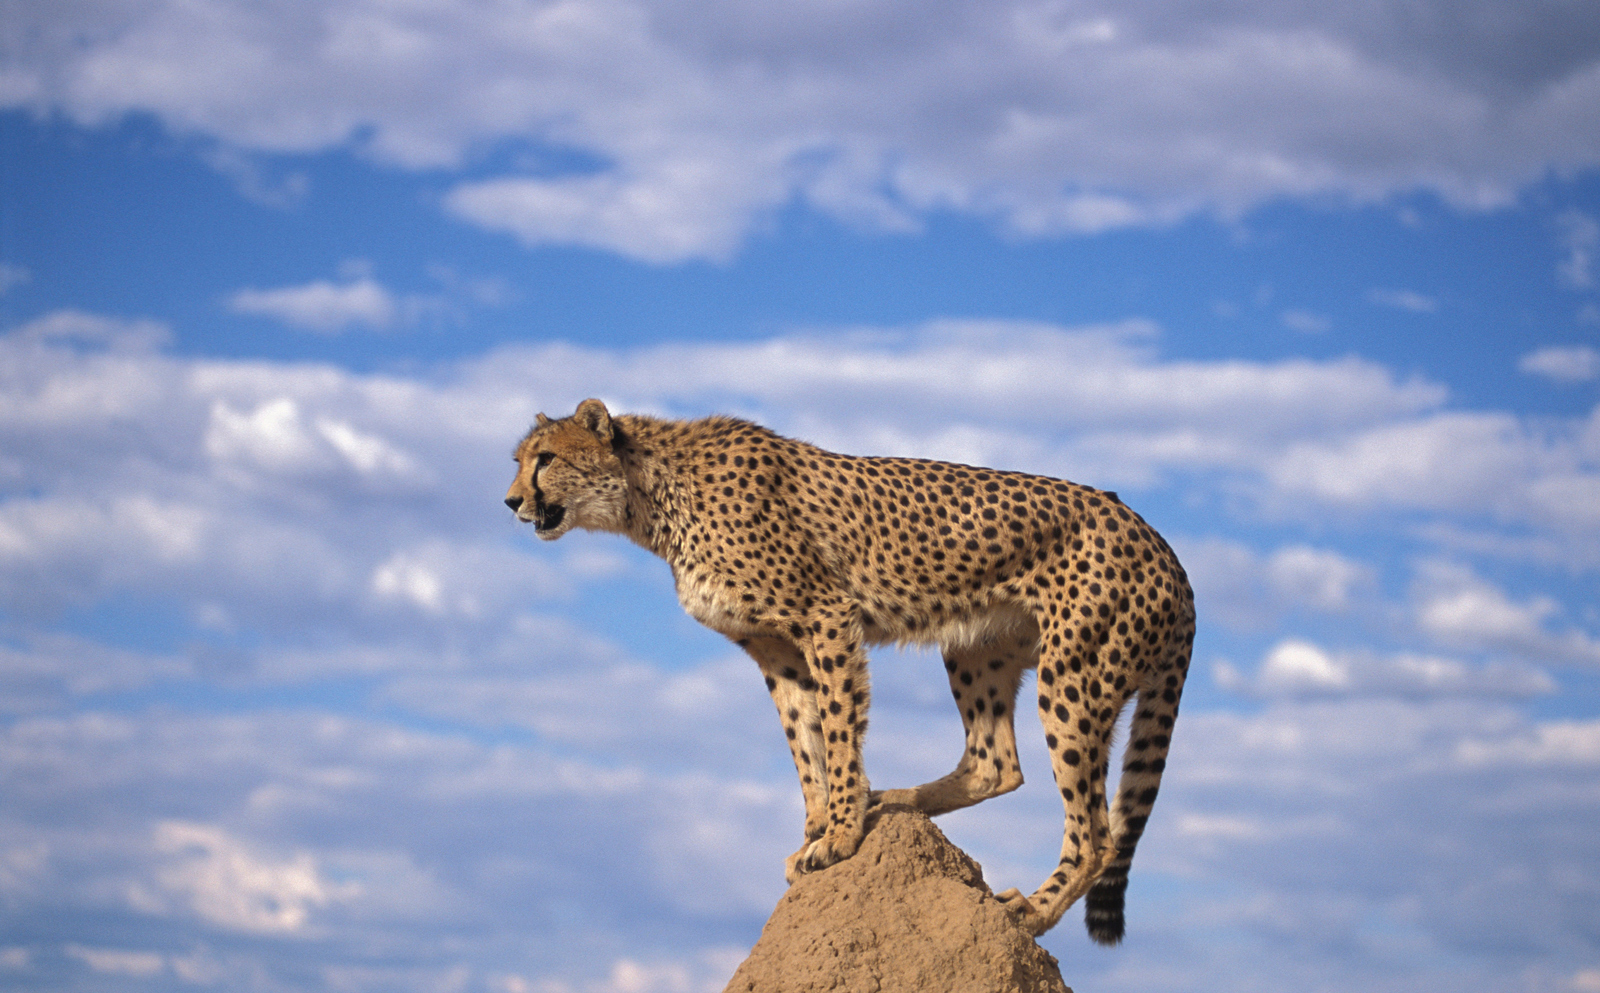 A cheetah on an anthill ©Andrew Harrington, Cheetah Conservation Fund